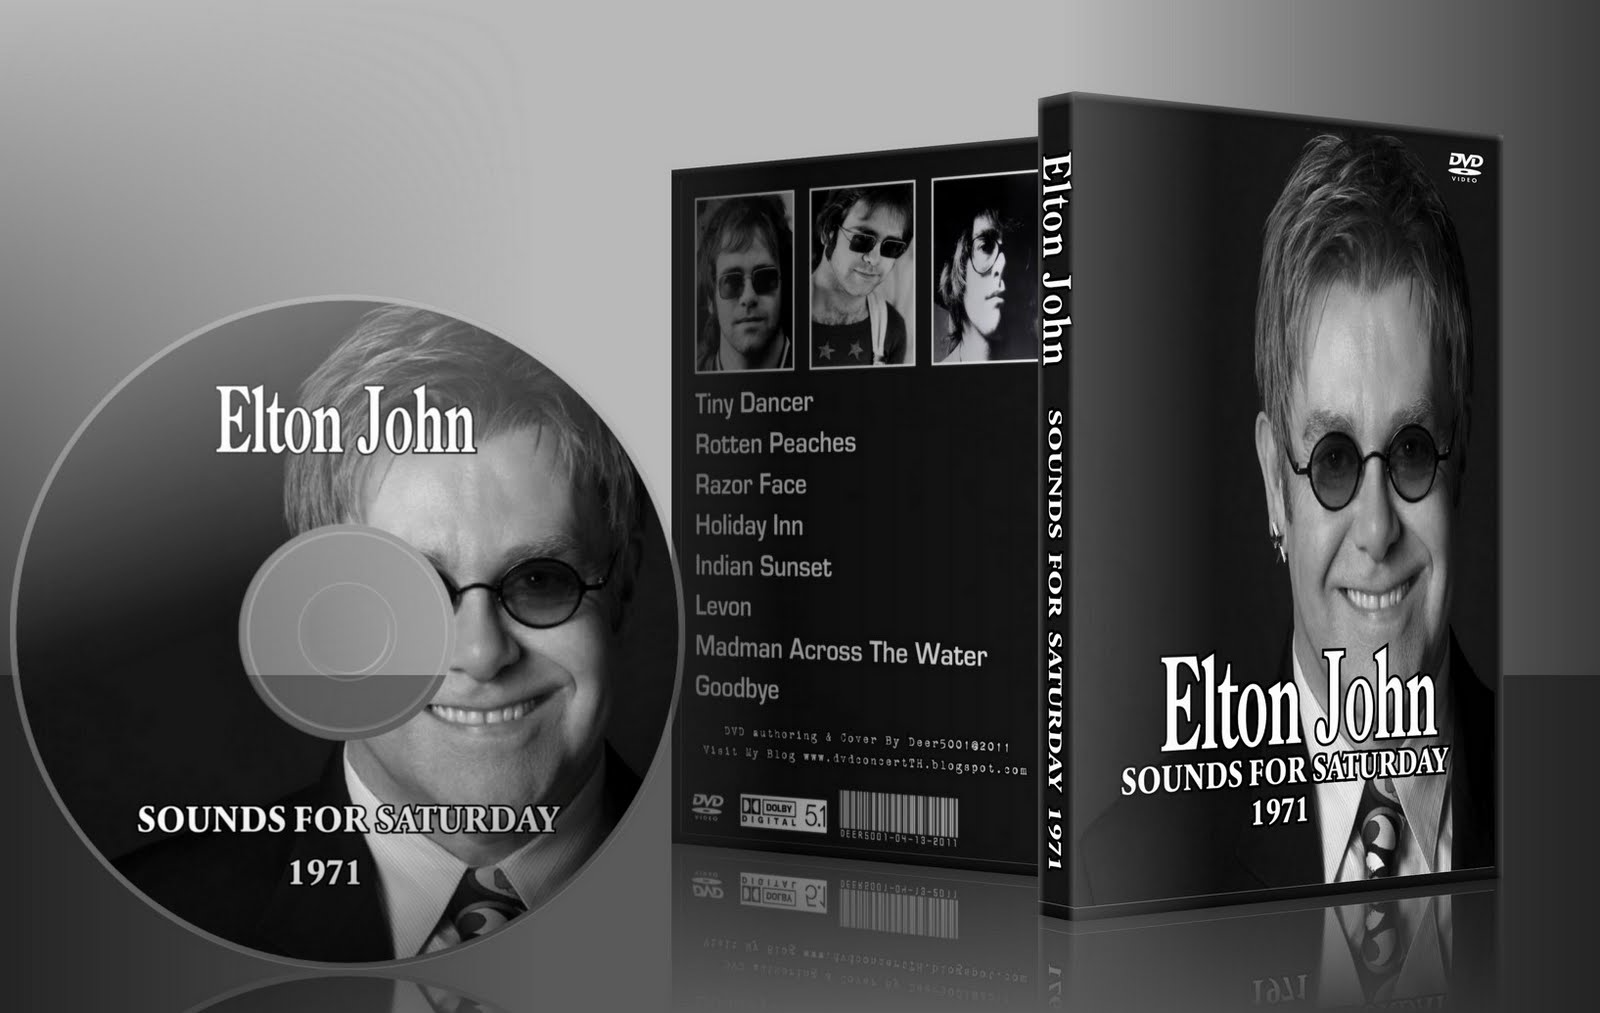 http://2.bp.blogspot.com/-14gDqUAi7Qw/Tafs0CJWBQI/AAAAAAAACgw/YGq9E34SV5c/s1600/DVD+Cover+For+Show+-+Elton+John+-+SOUNDS+FOR+SATURDAY+1971.jpg